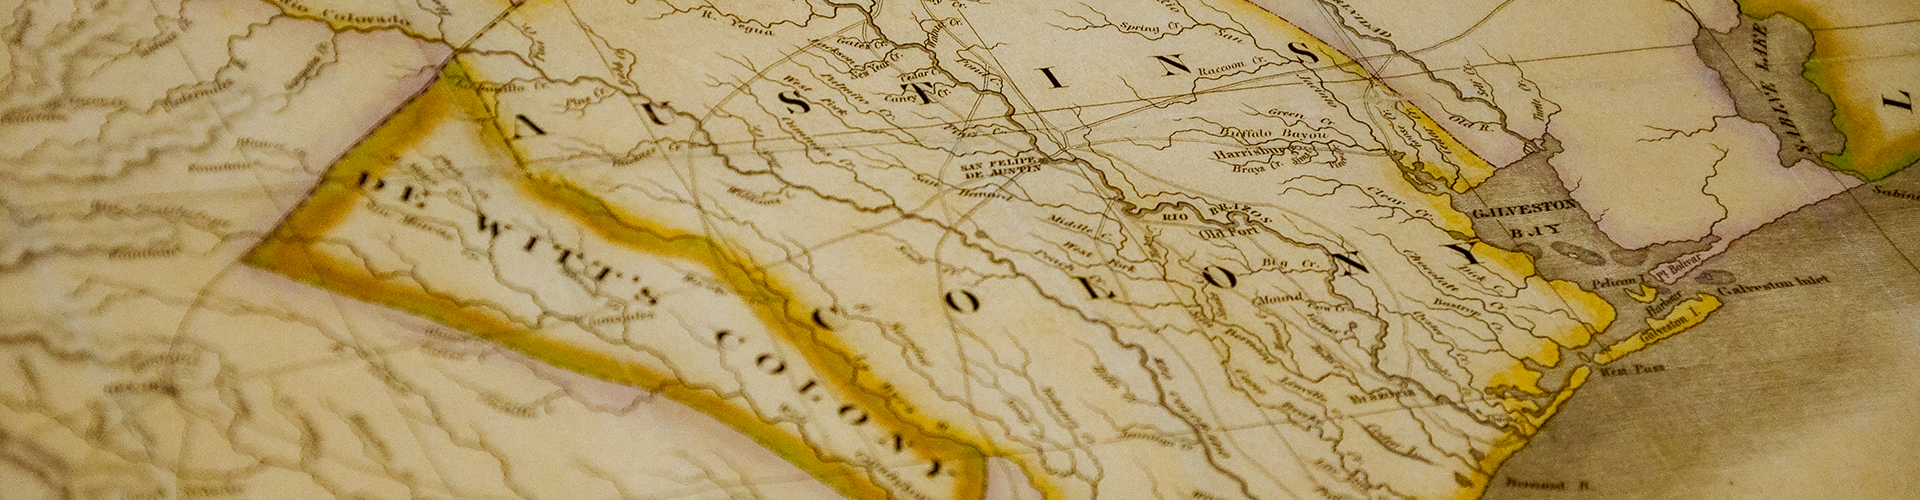 Map Of Texas Am.Texas A M Acquires Stephen F Austin S 1830 Map Of Texas Texas A M